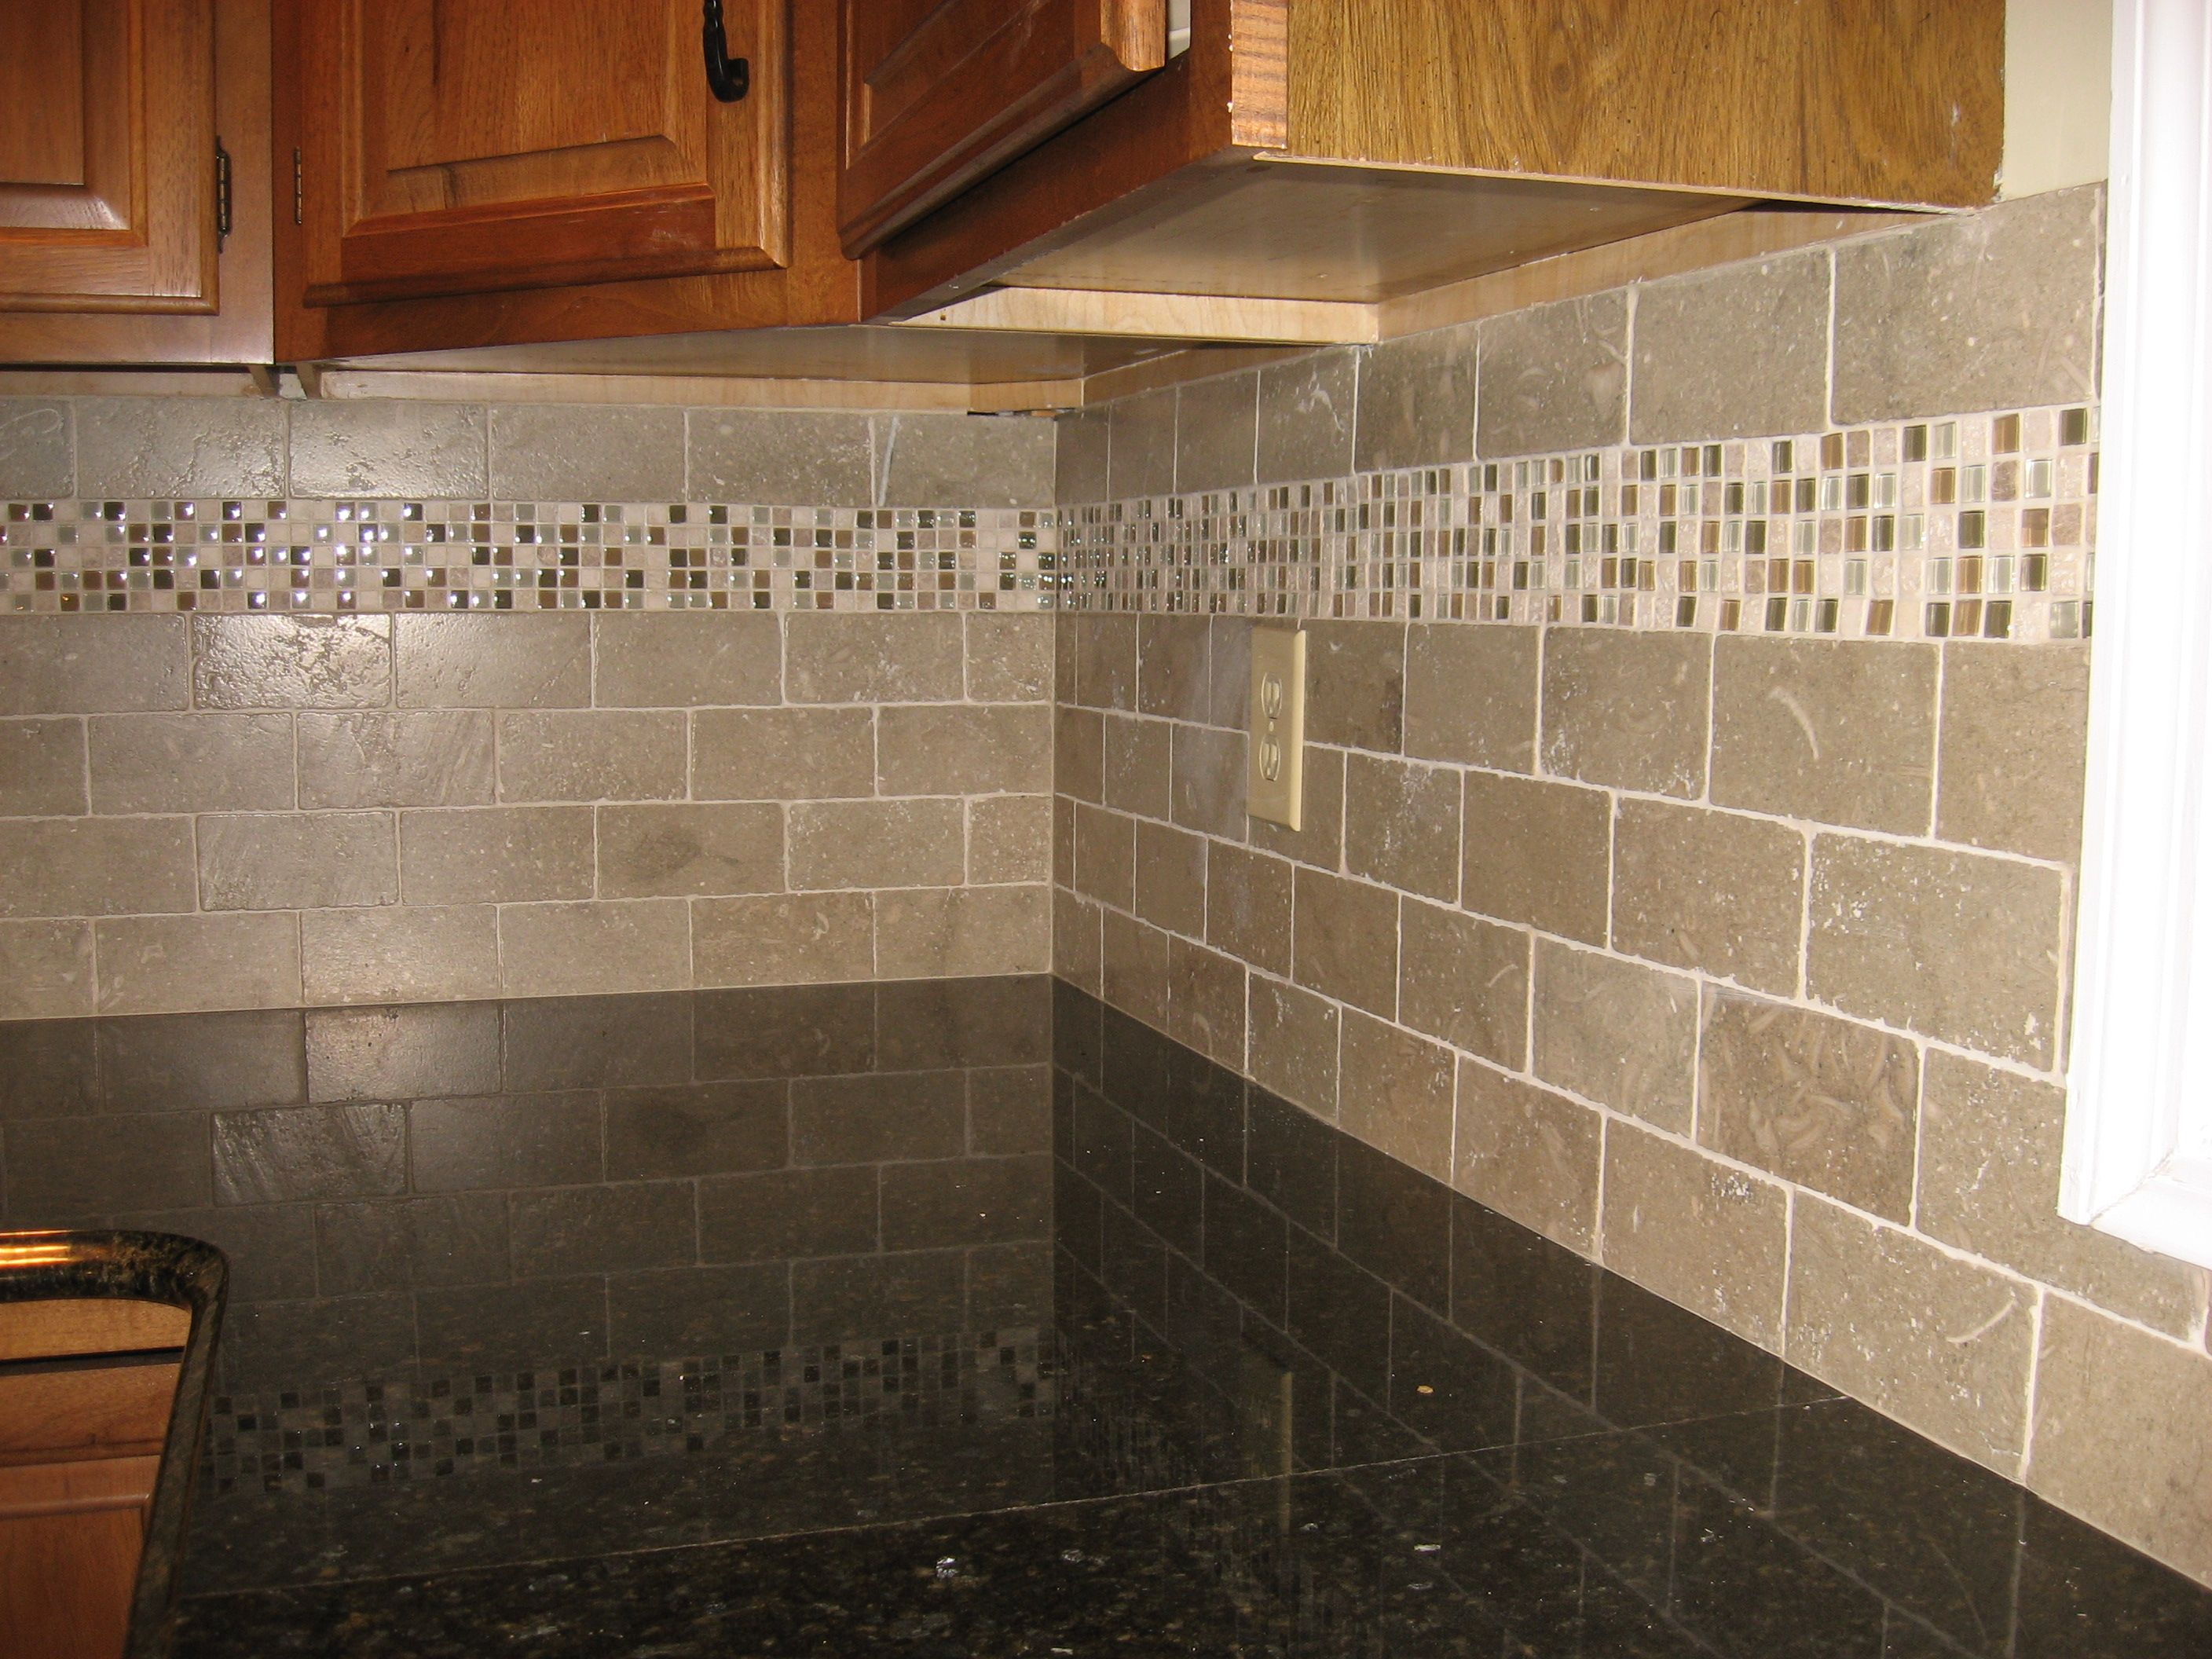 Backsplash Kitchen Subway Tile Subway Tiles With Mosaic Accents .backsplash With Tumbled